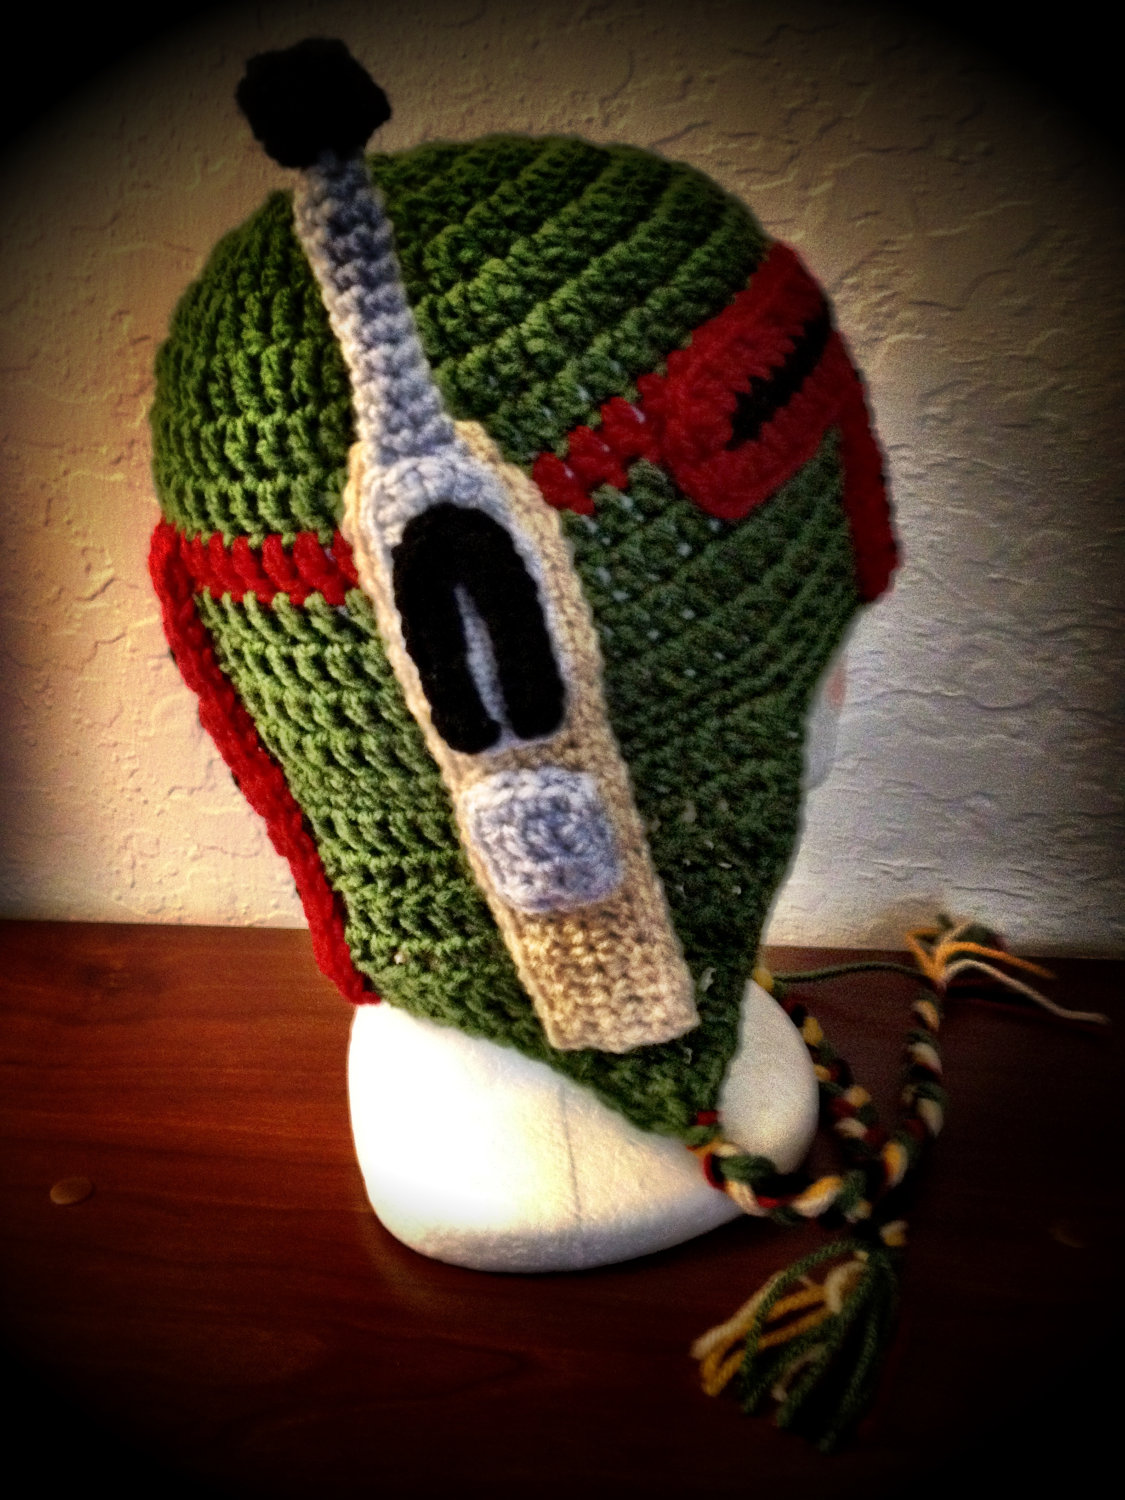 Star Wars Bounty Hunter Boba Fett Inspired Hat